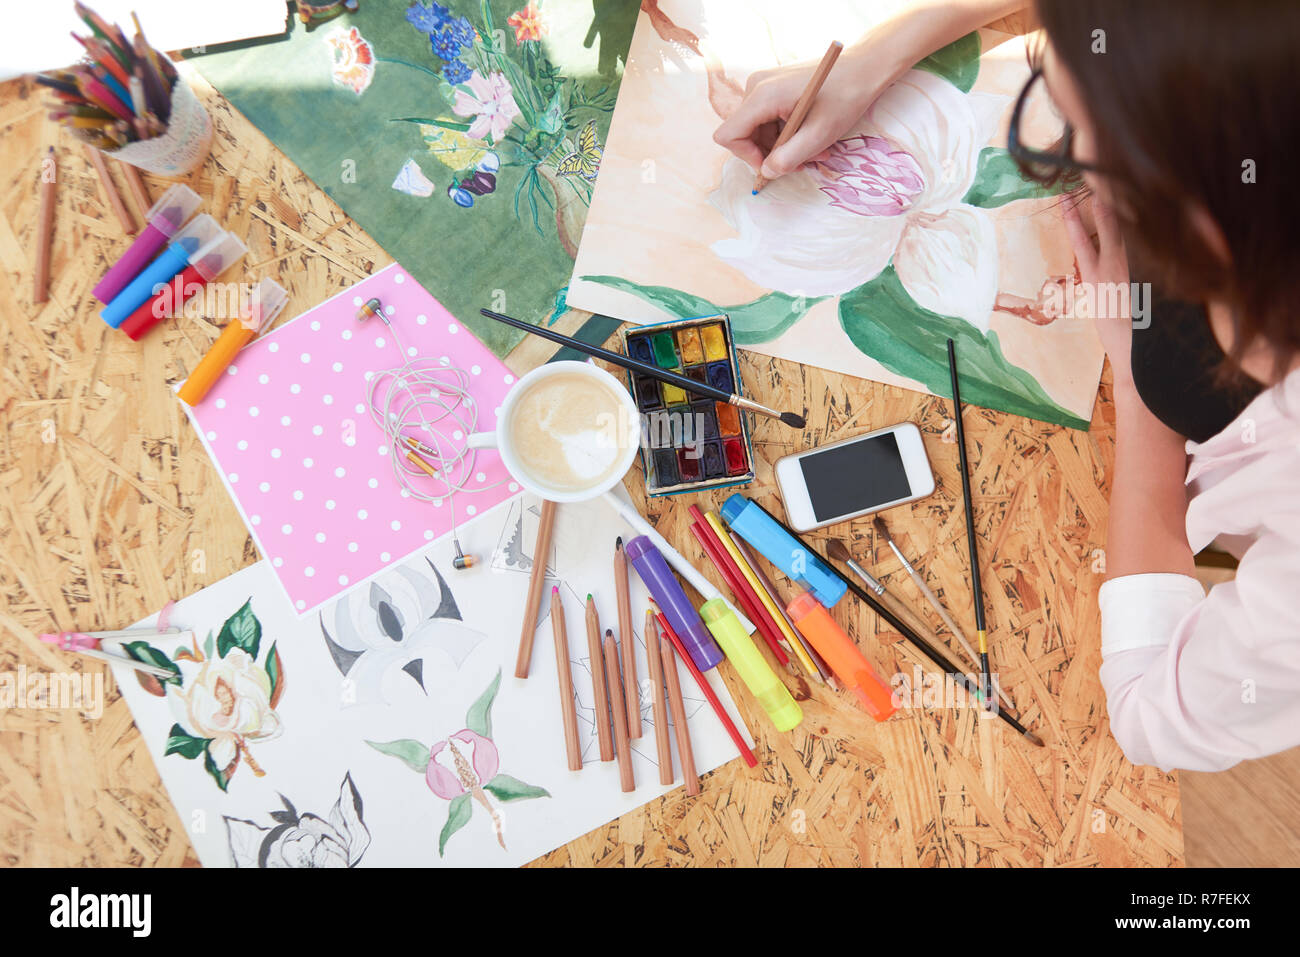 View from above of painter drawing lovely flower with pencil in hand. Different objects as containers with pencils, markers, brushes, sheets of paper, gadget and cup of coffee on table. - Stock Image